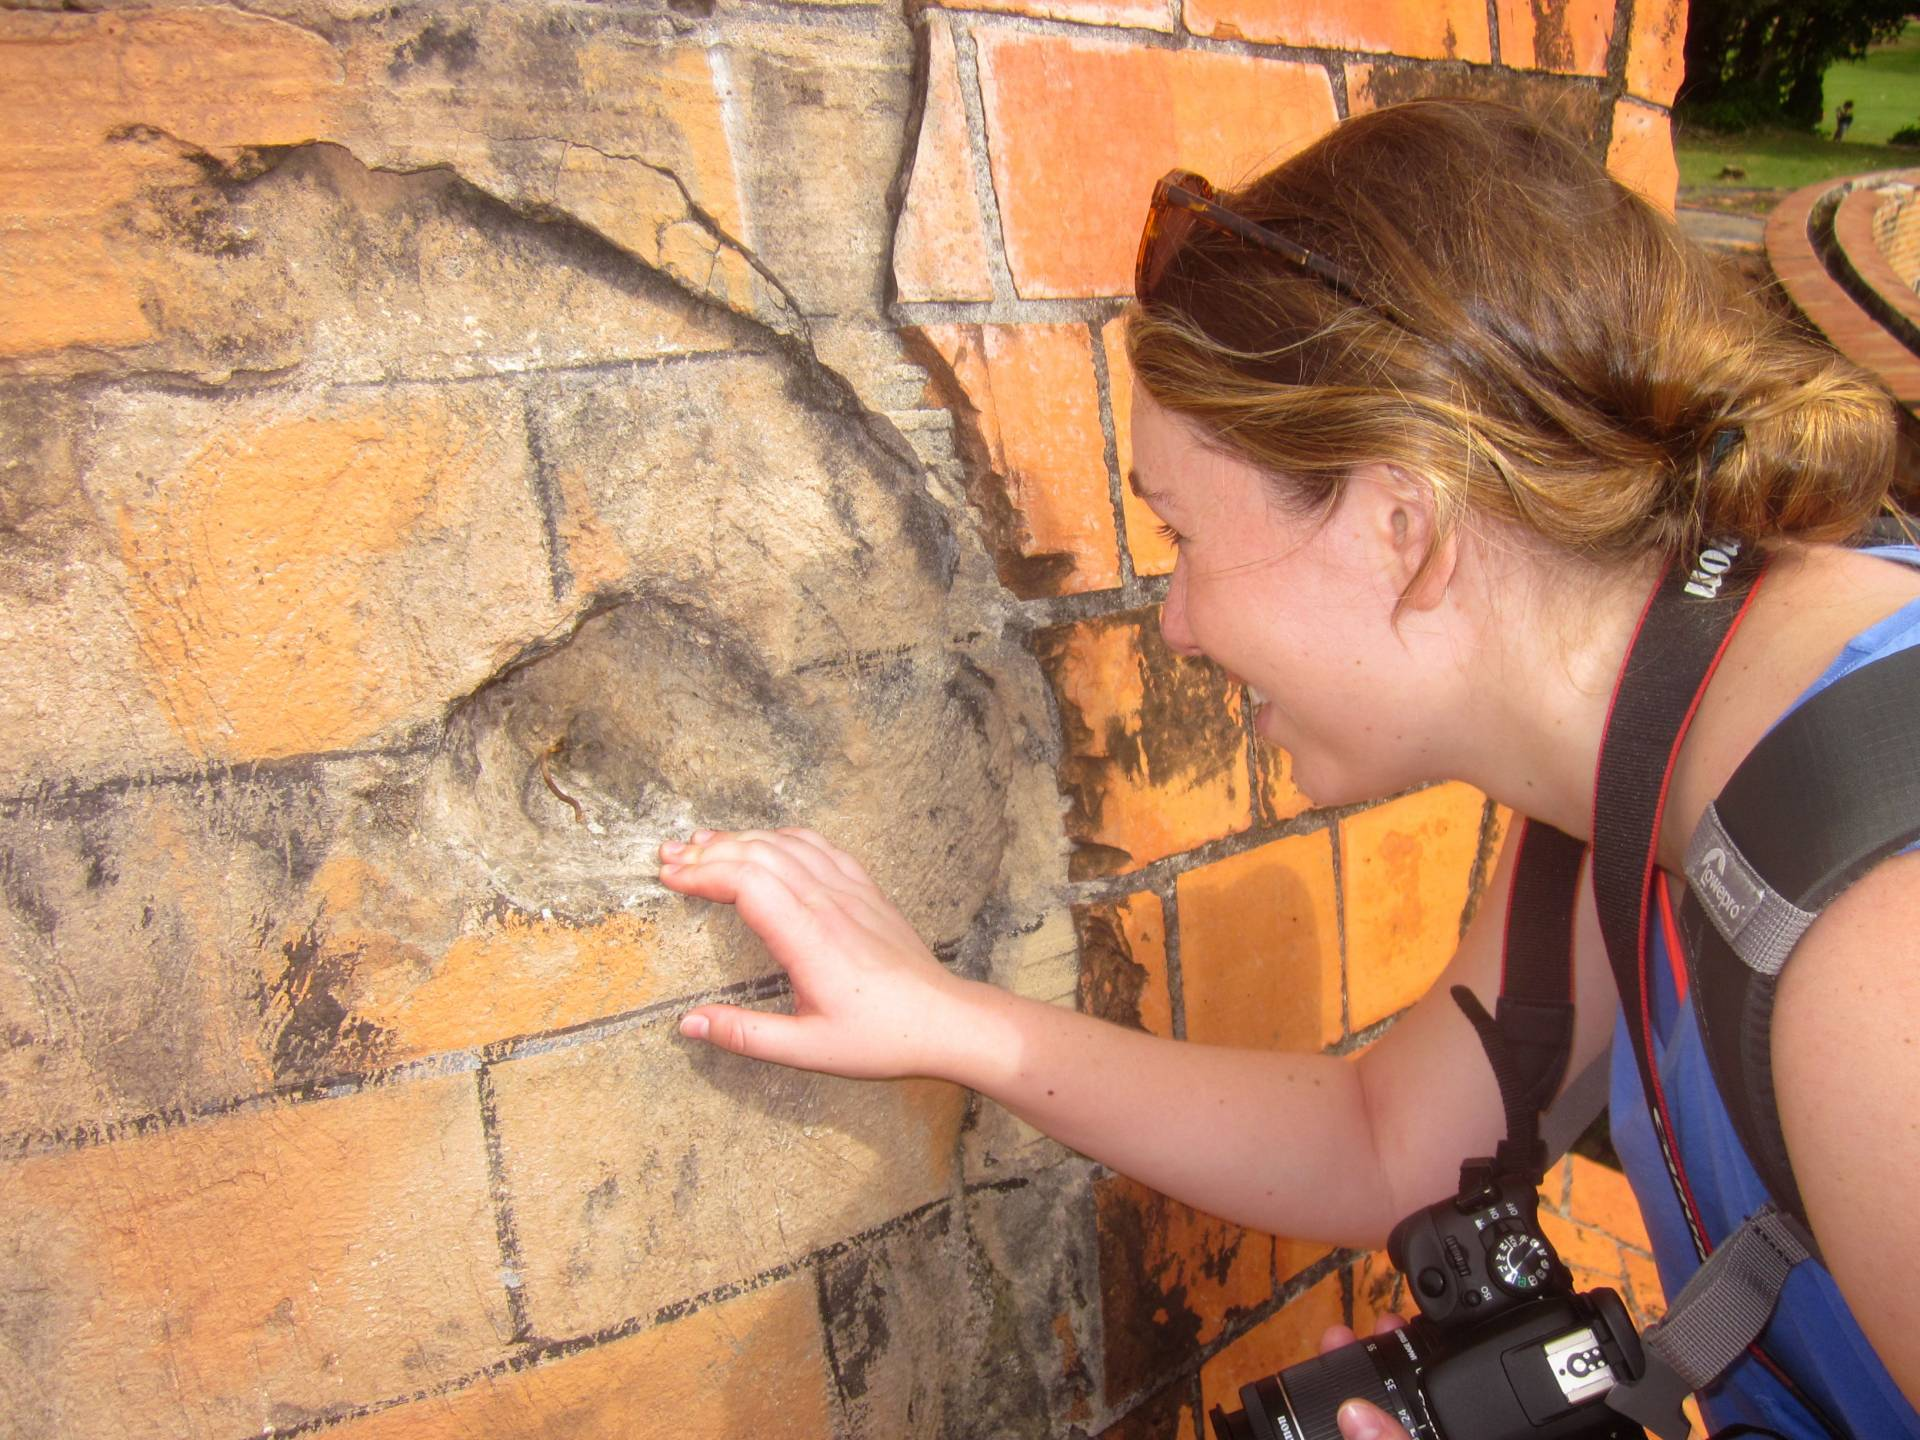 Isabella Douglas looking at reinforced concrete in Cuba